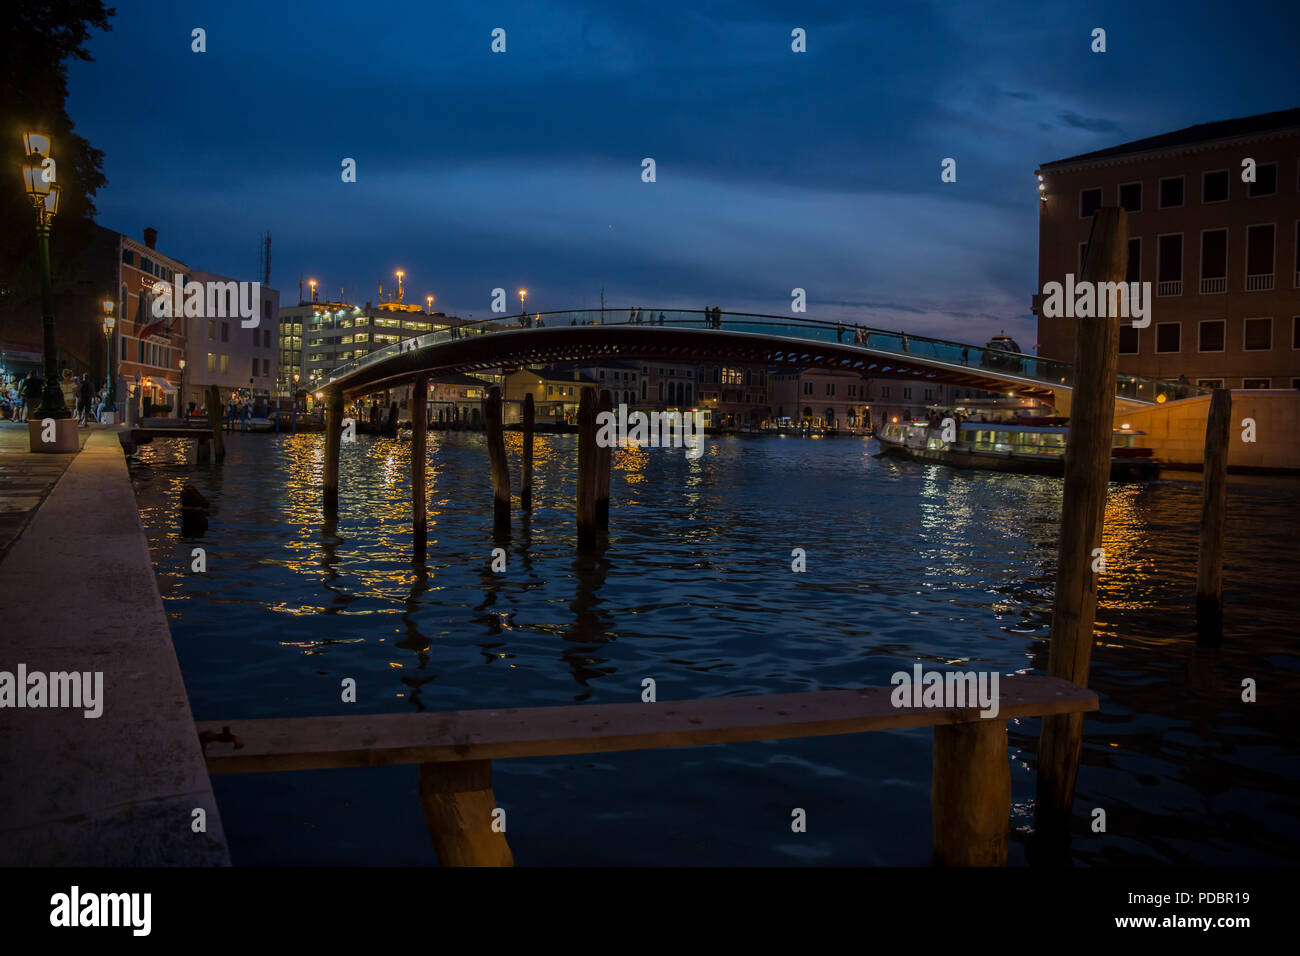 Ponte Della Costituzione Bridge in Venice at evening Stock Photo